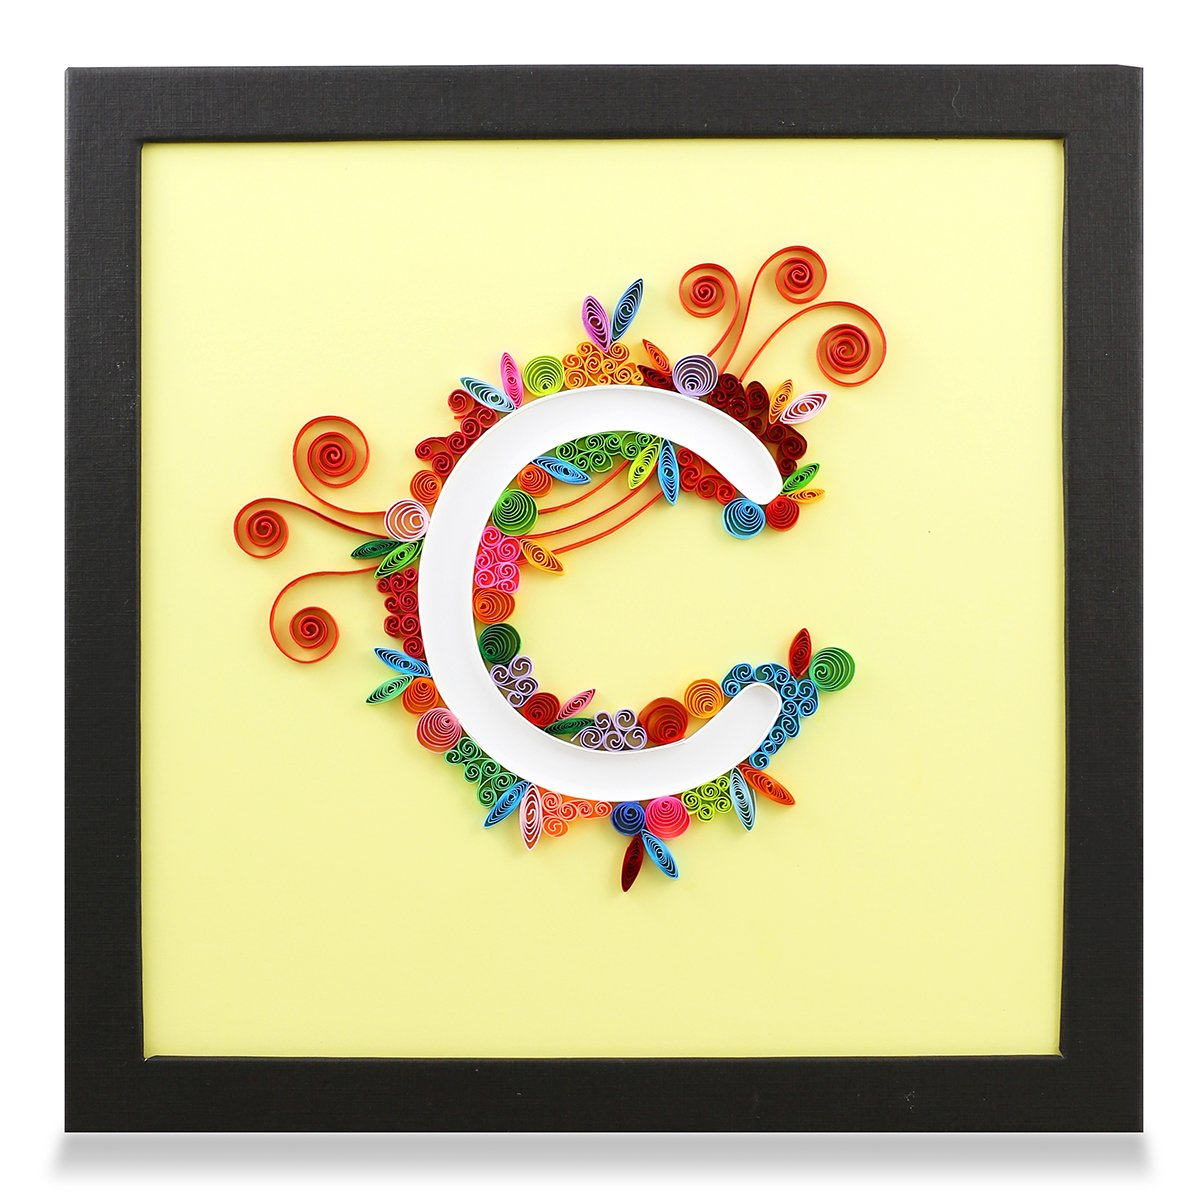 Amazon.com: Letter C Handmade Paper Quilling Artwork, Framed 3D Wall ...